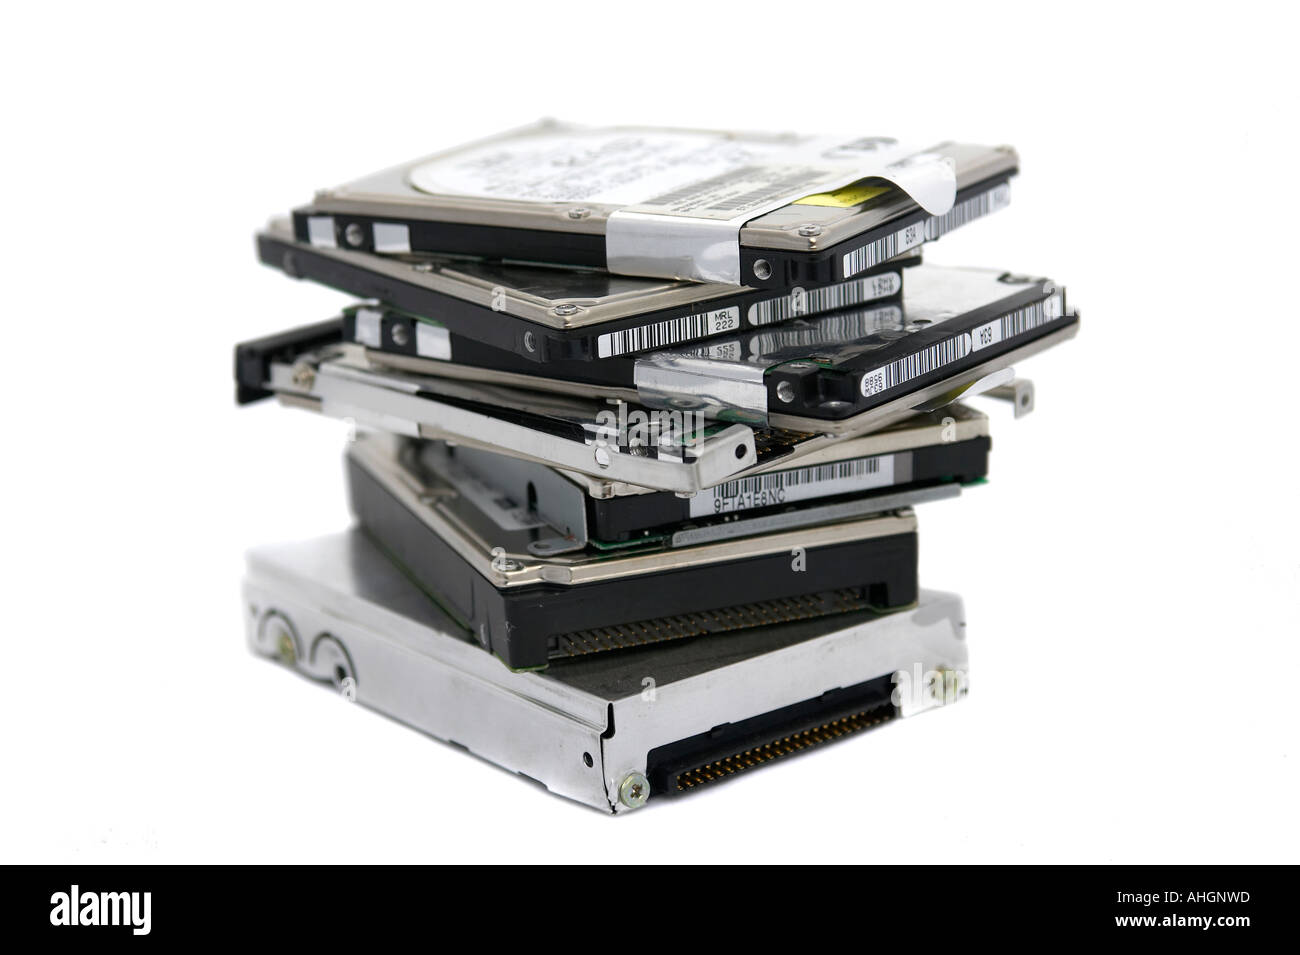 Pile of laptop hard discs against a white background - Stock Image